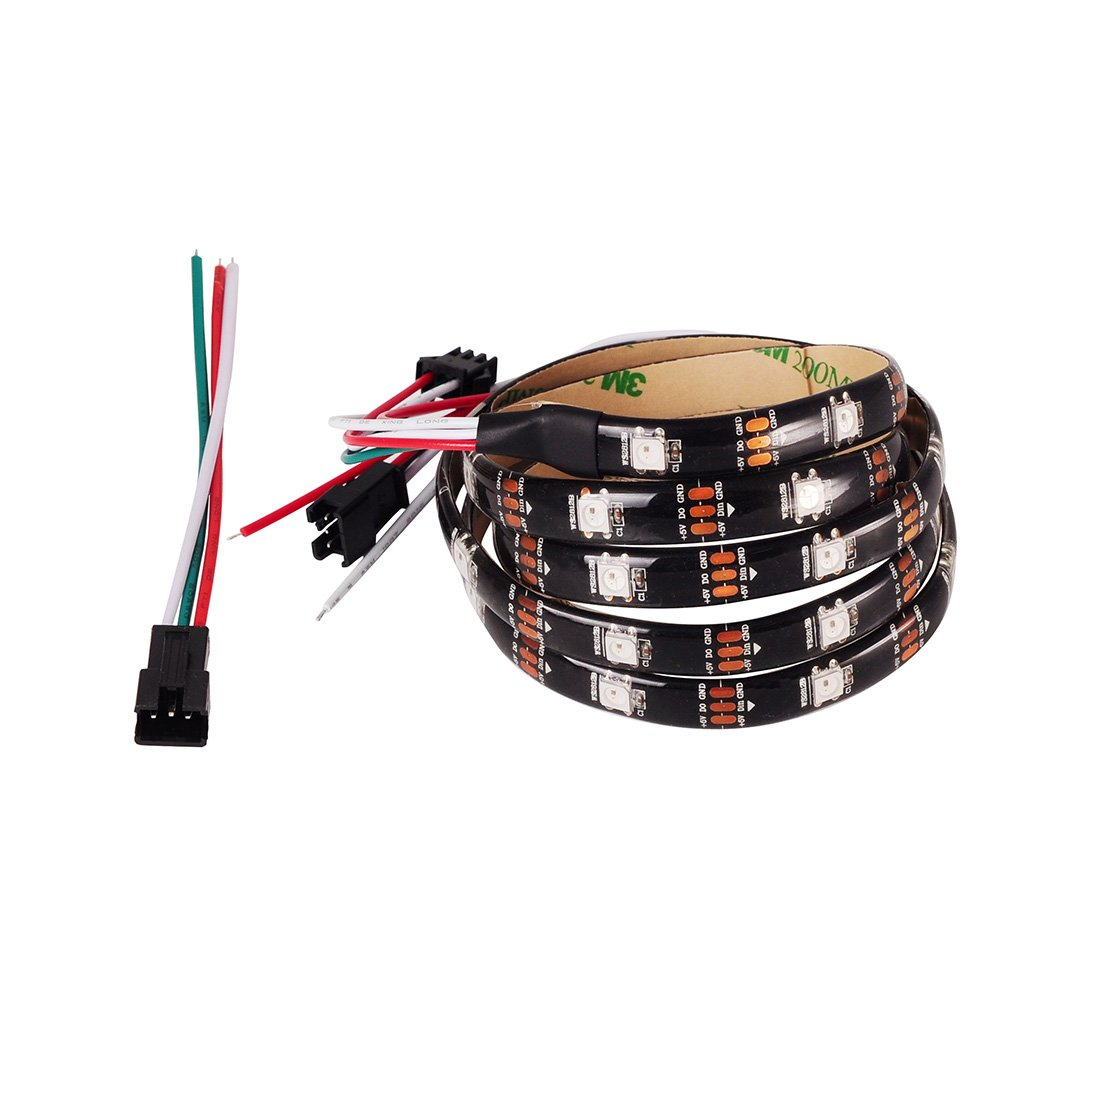 BTF-LIGHTING 3.2FT 1m WS2812b 30leds 30pixels Impermeable IP65 Negro PCB Flexible individualmente direccionable Tira Led Sueño en color DC5V: Amazon.es: ...